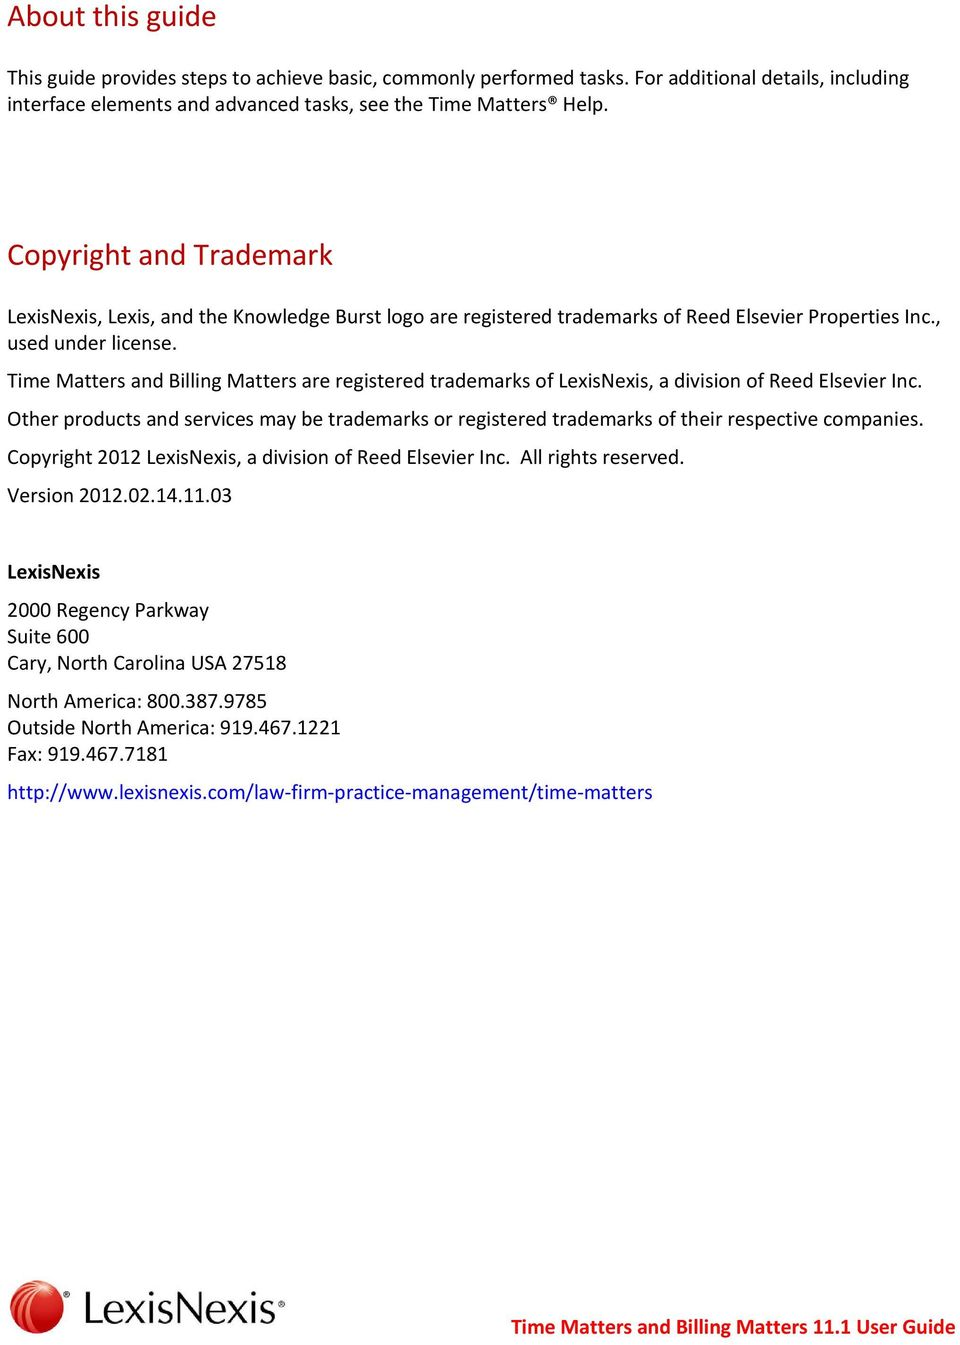 Time Matters and Billing Matters are registered trademarks of LexisNexis, a division of Reed Elsevier Inc.